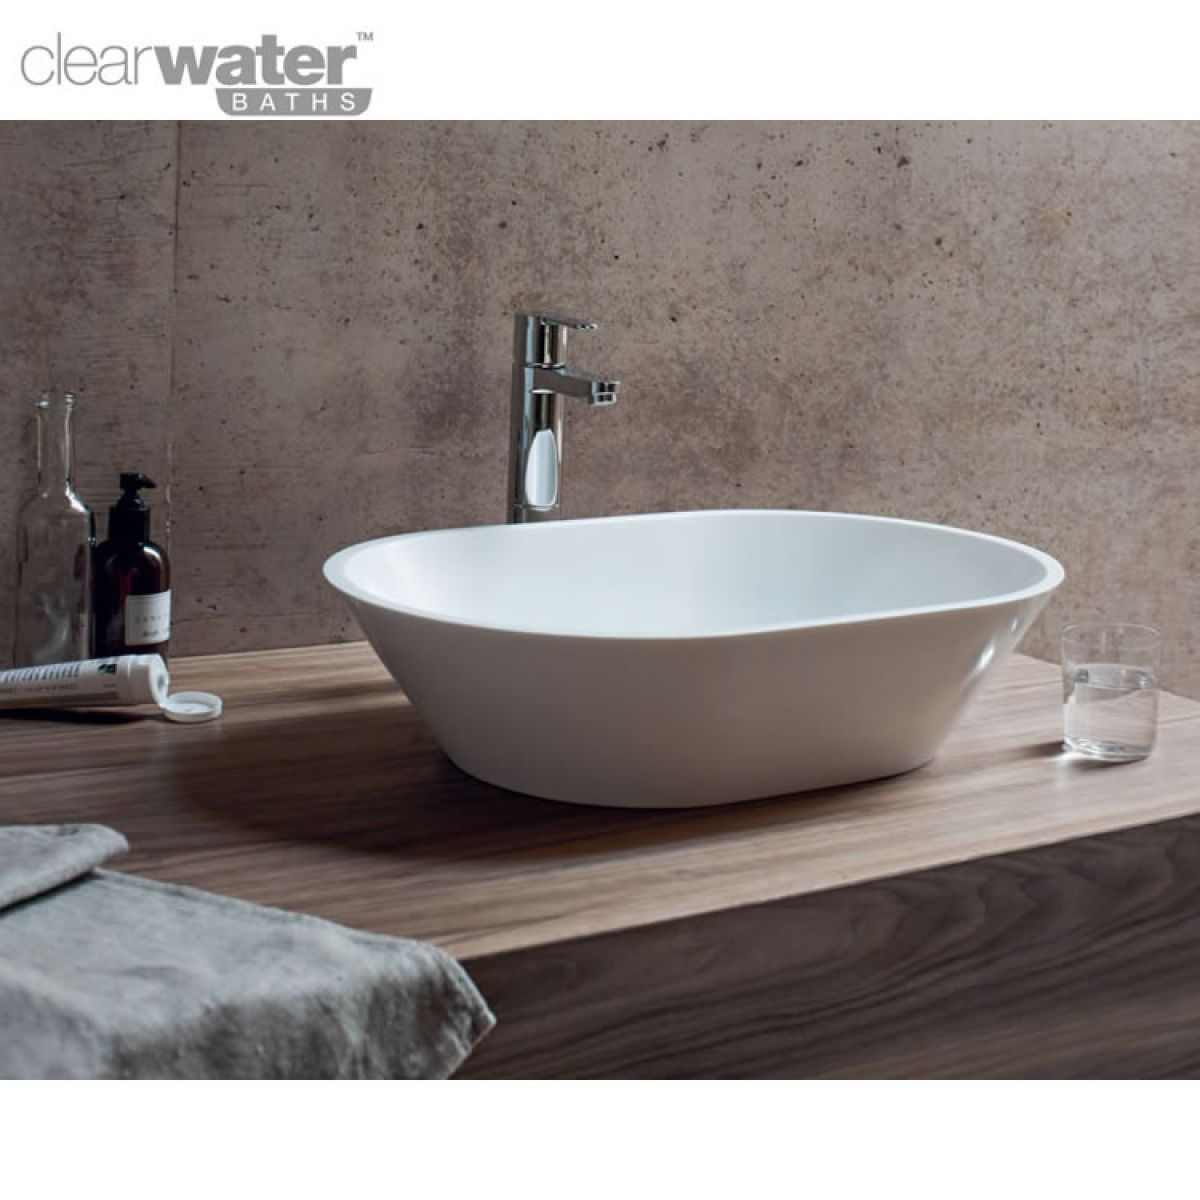 clearwater sontuoso natural stone countertop basin uk. Black Bedroom Furniture Sets. Home Design Ideas